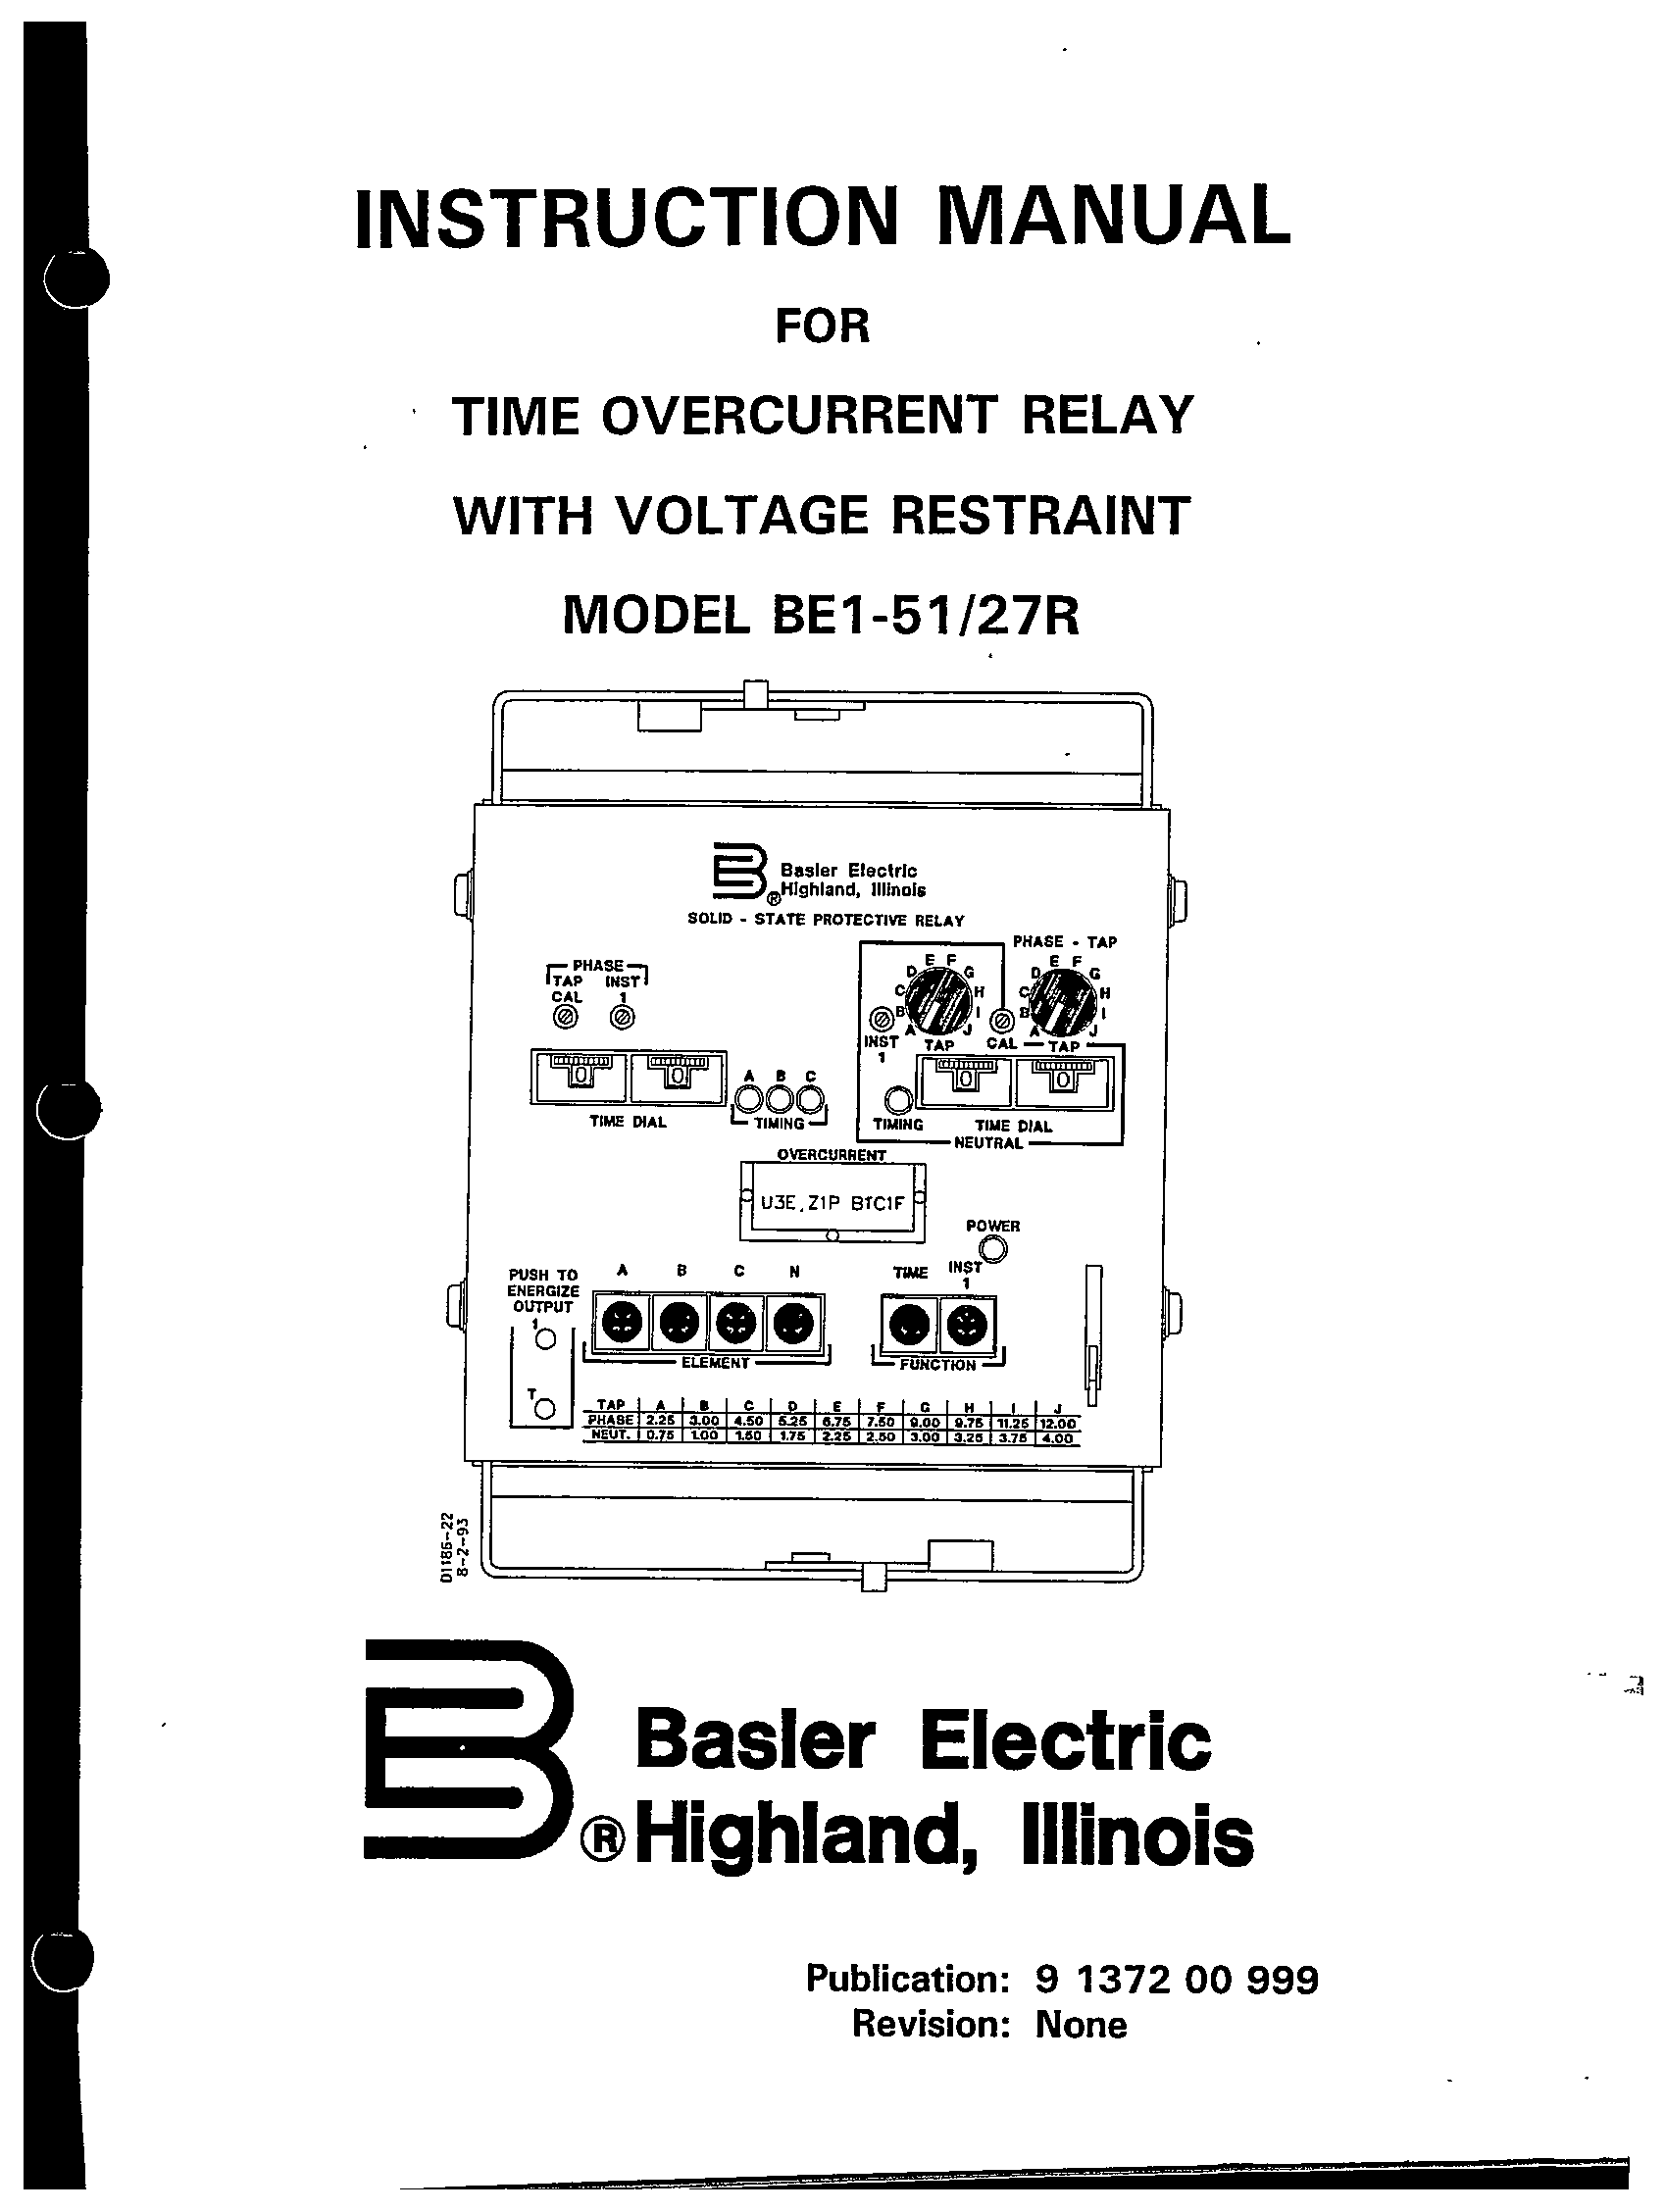 TIME OVERCURRENT RELAY WITH VOLTAGE RESTRAINT MODEL BE1-51